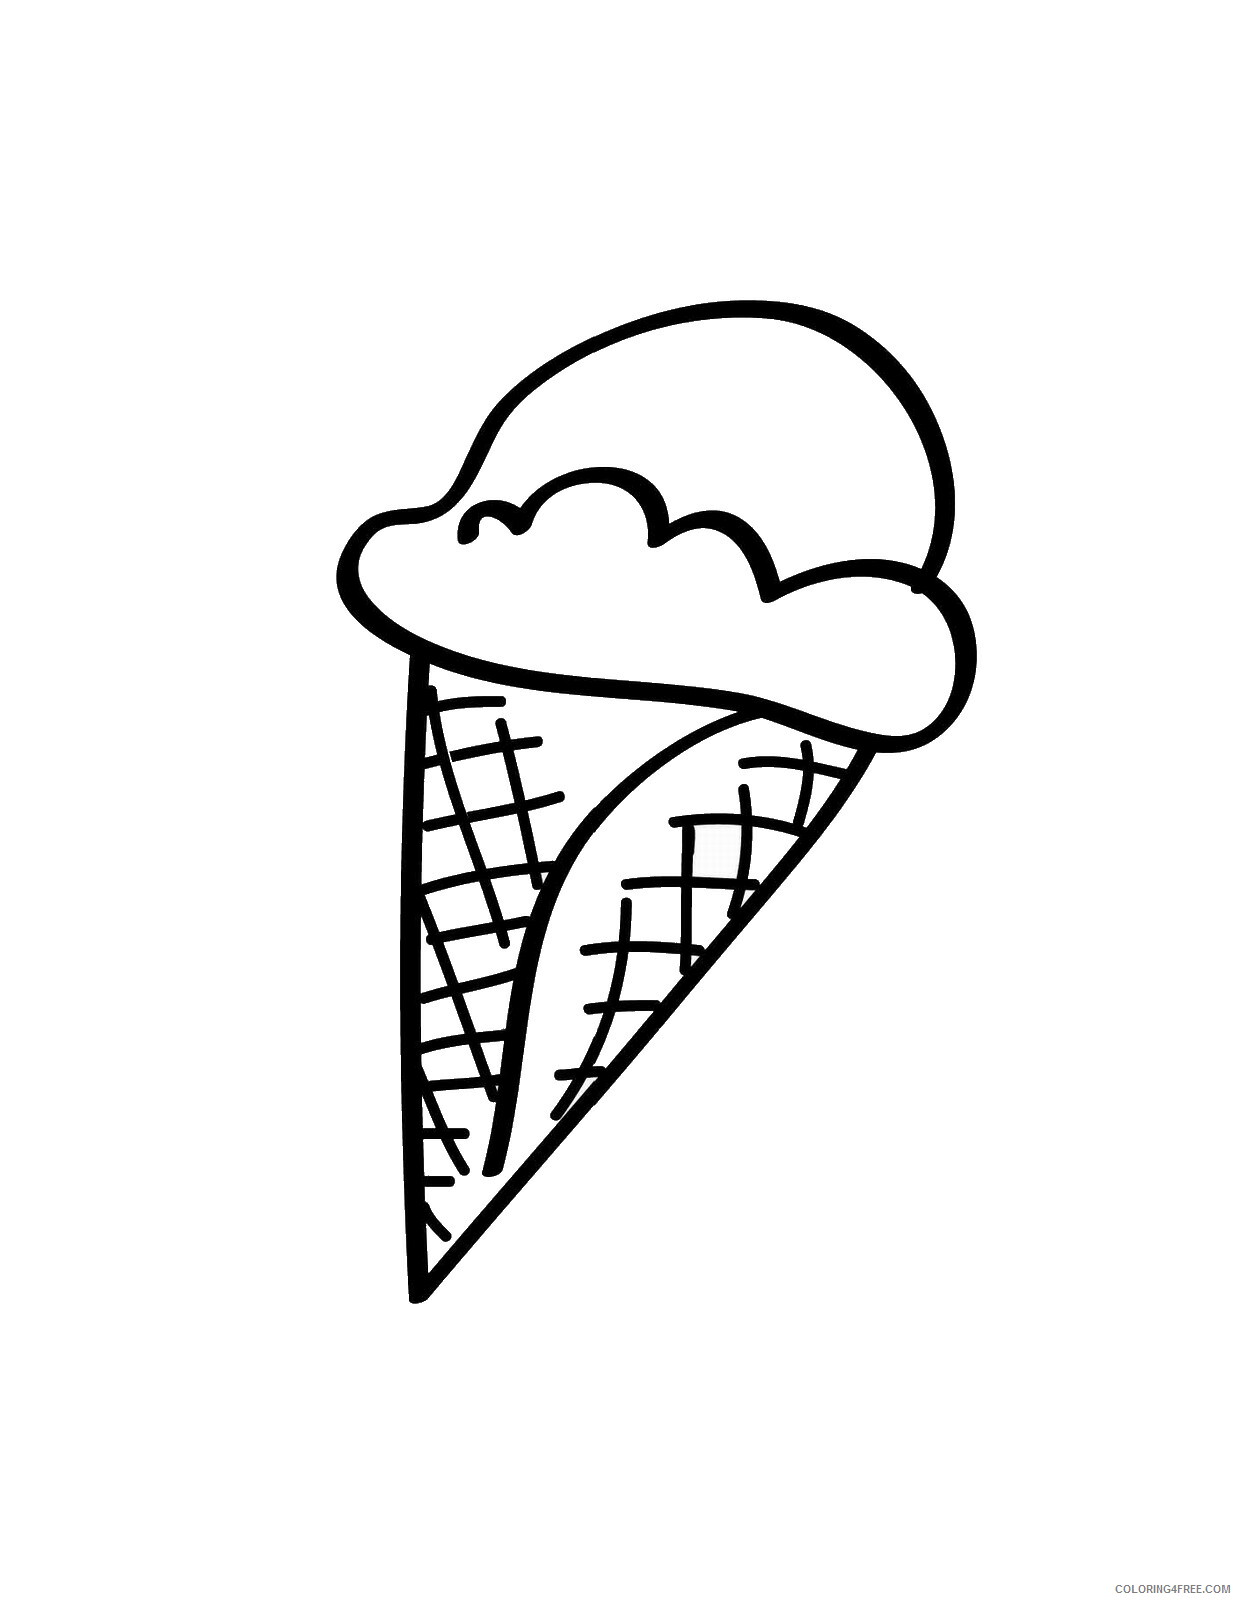 Ice Cream Coloring Pages for Kids icecream_02 Printable 2021 359 Coloring4free